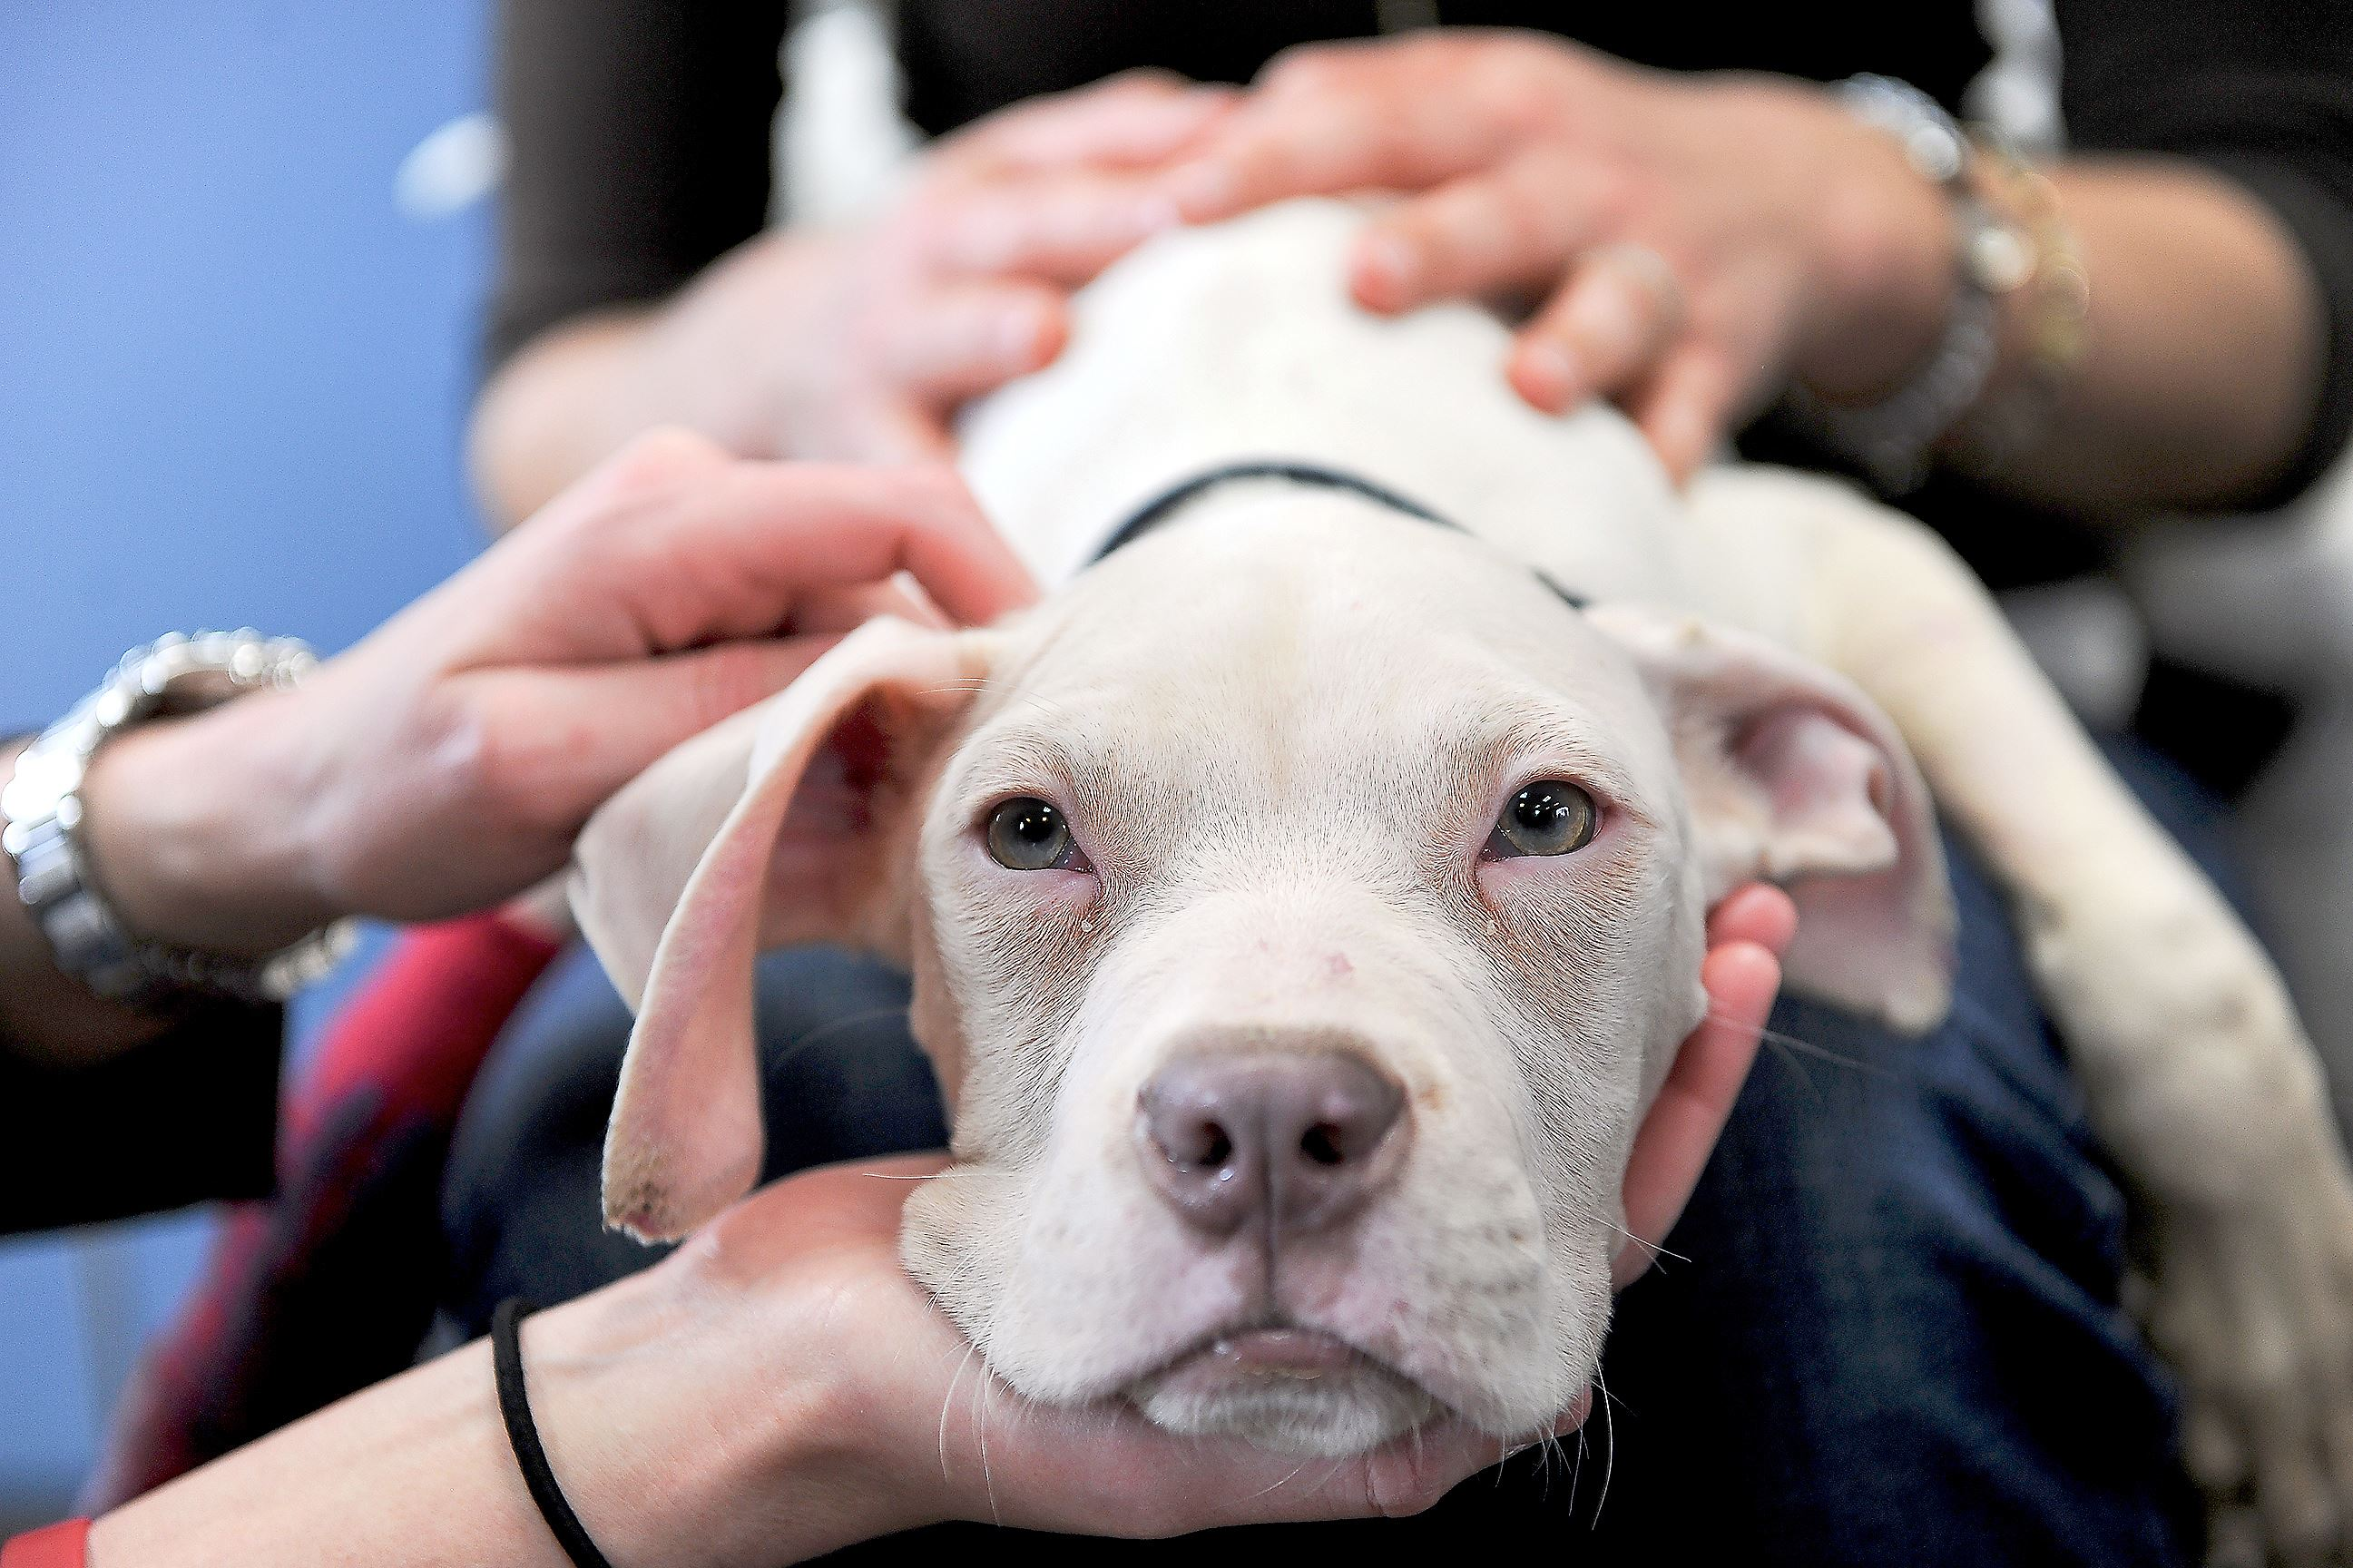 20160226rldValentino01 After a news conference and lots of attention Friday, Valentino, a pit bull mix, is patted by admirers Colleen Schaefer, left, and Natalie Ahwesh at the Animal Rescue League Shelter in Larimer.